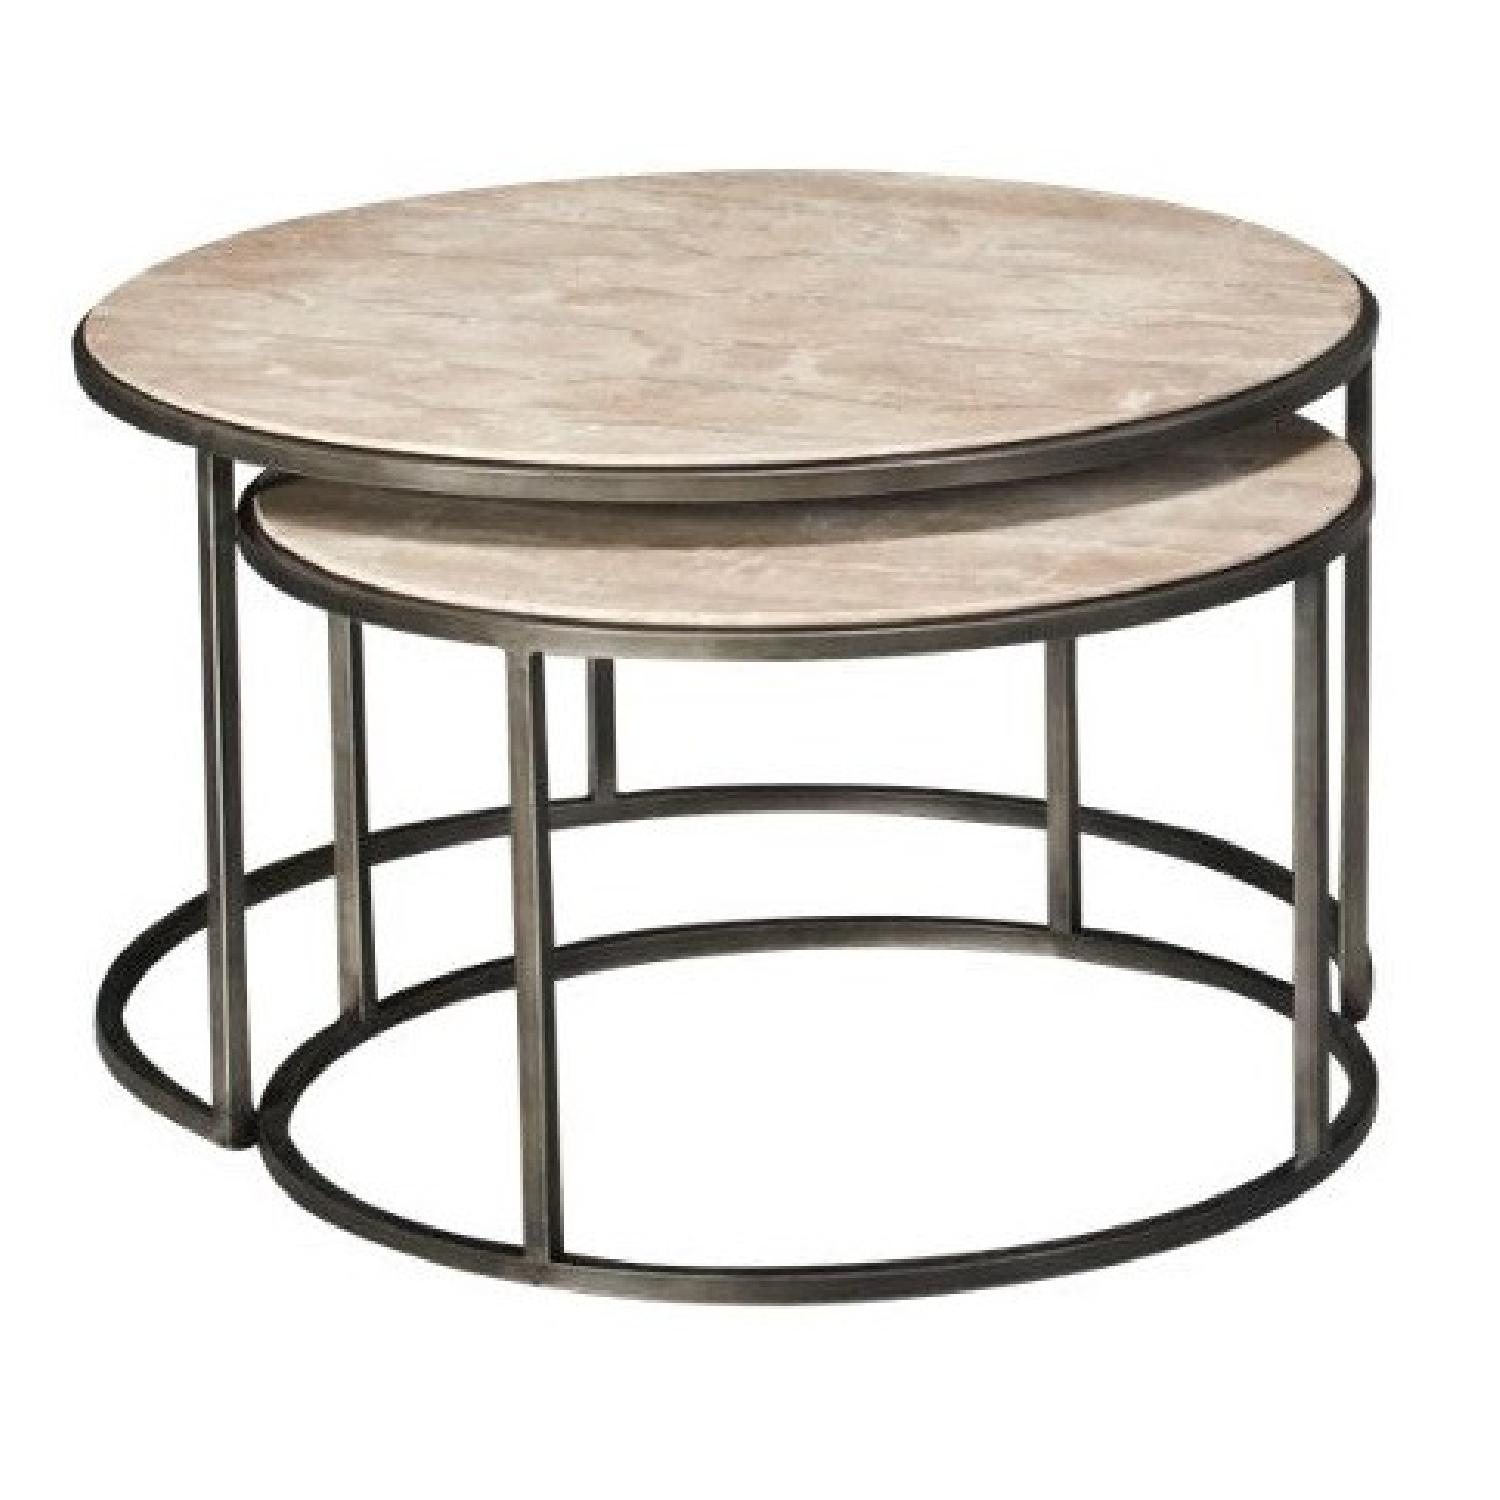 Travertine Marble Nesting Coffee Tables - image-6